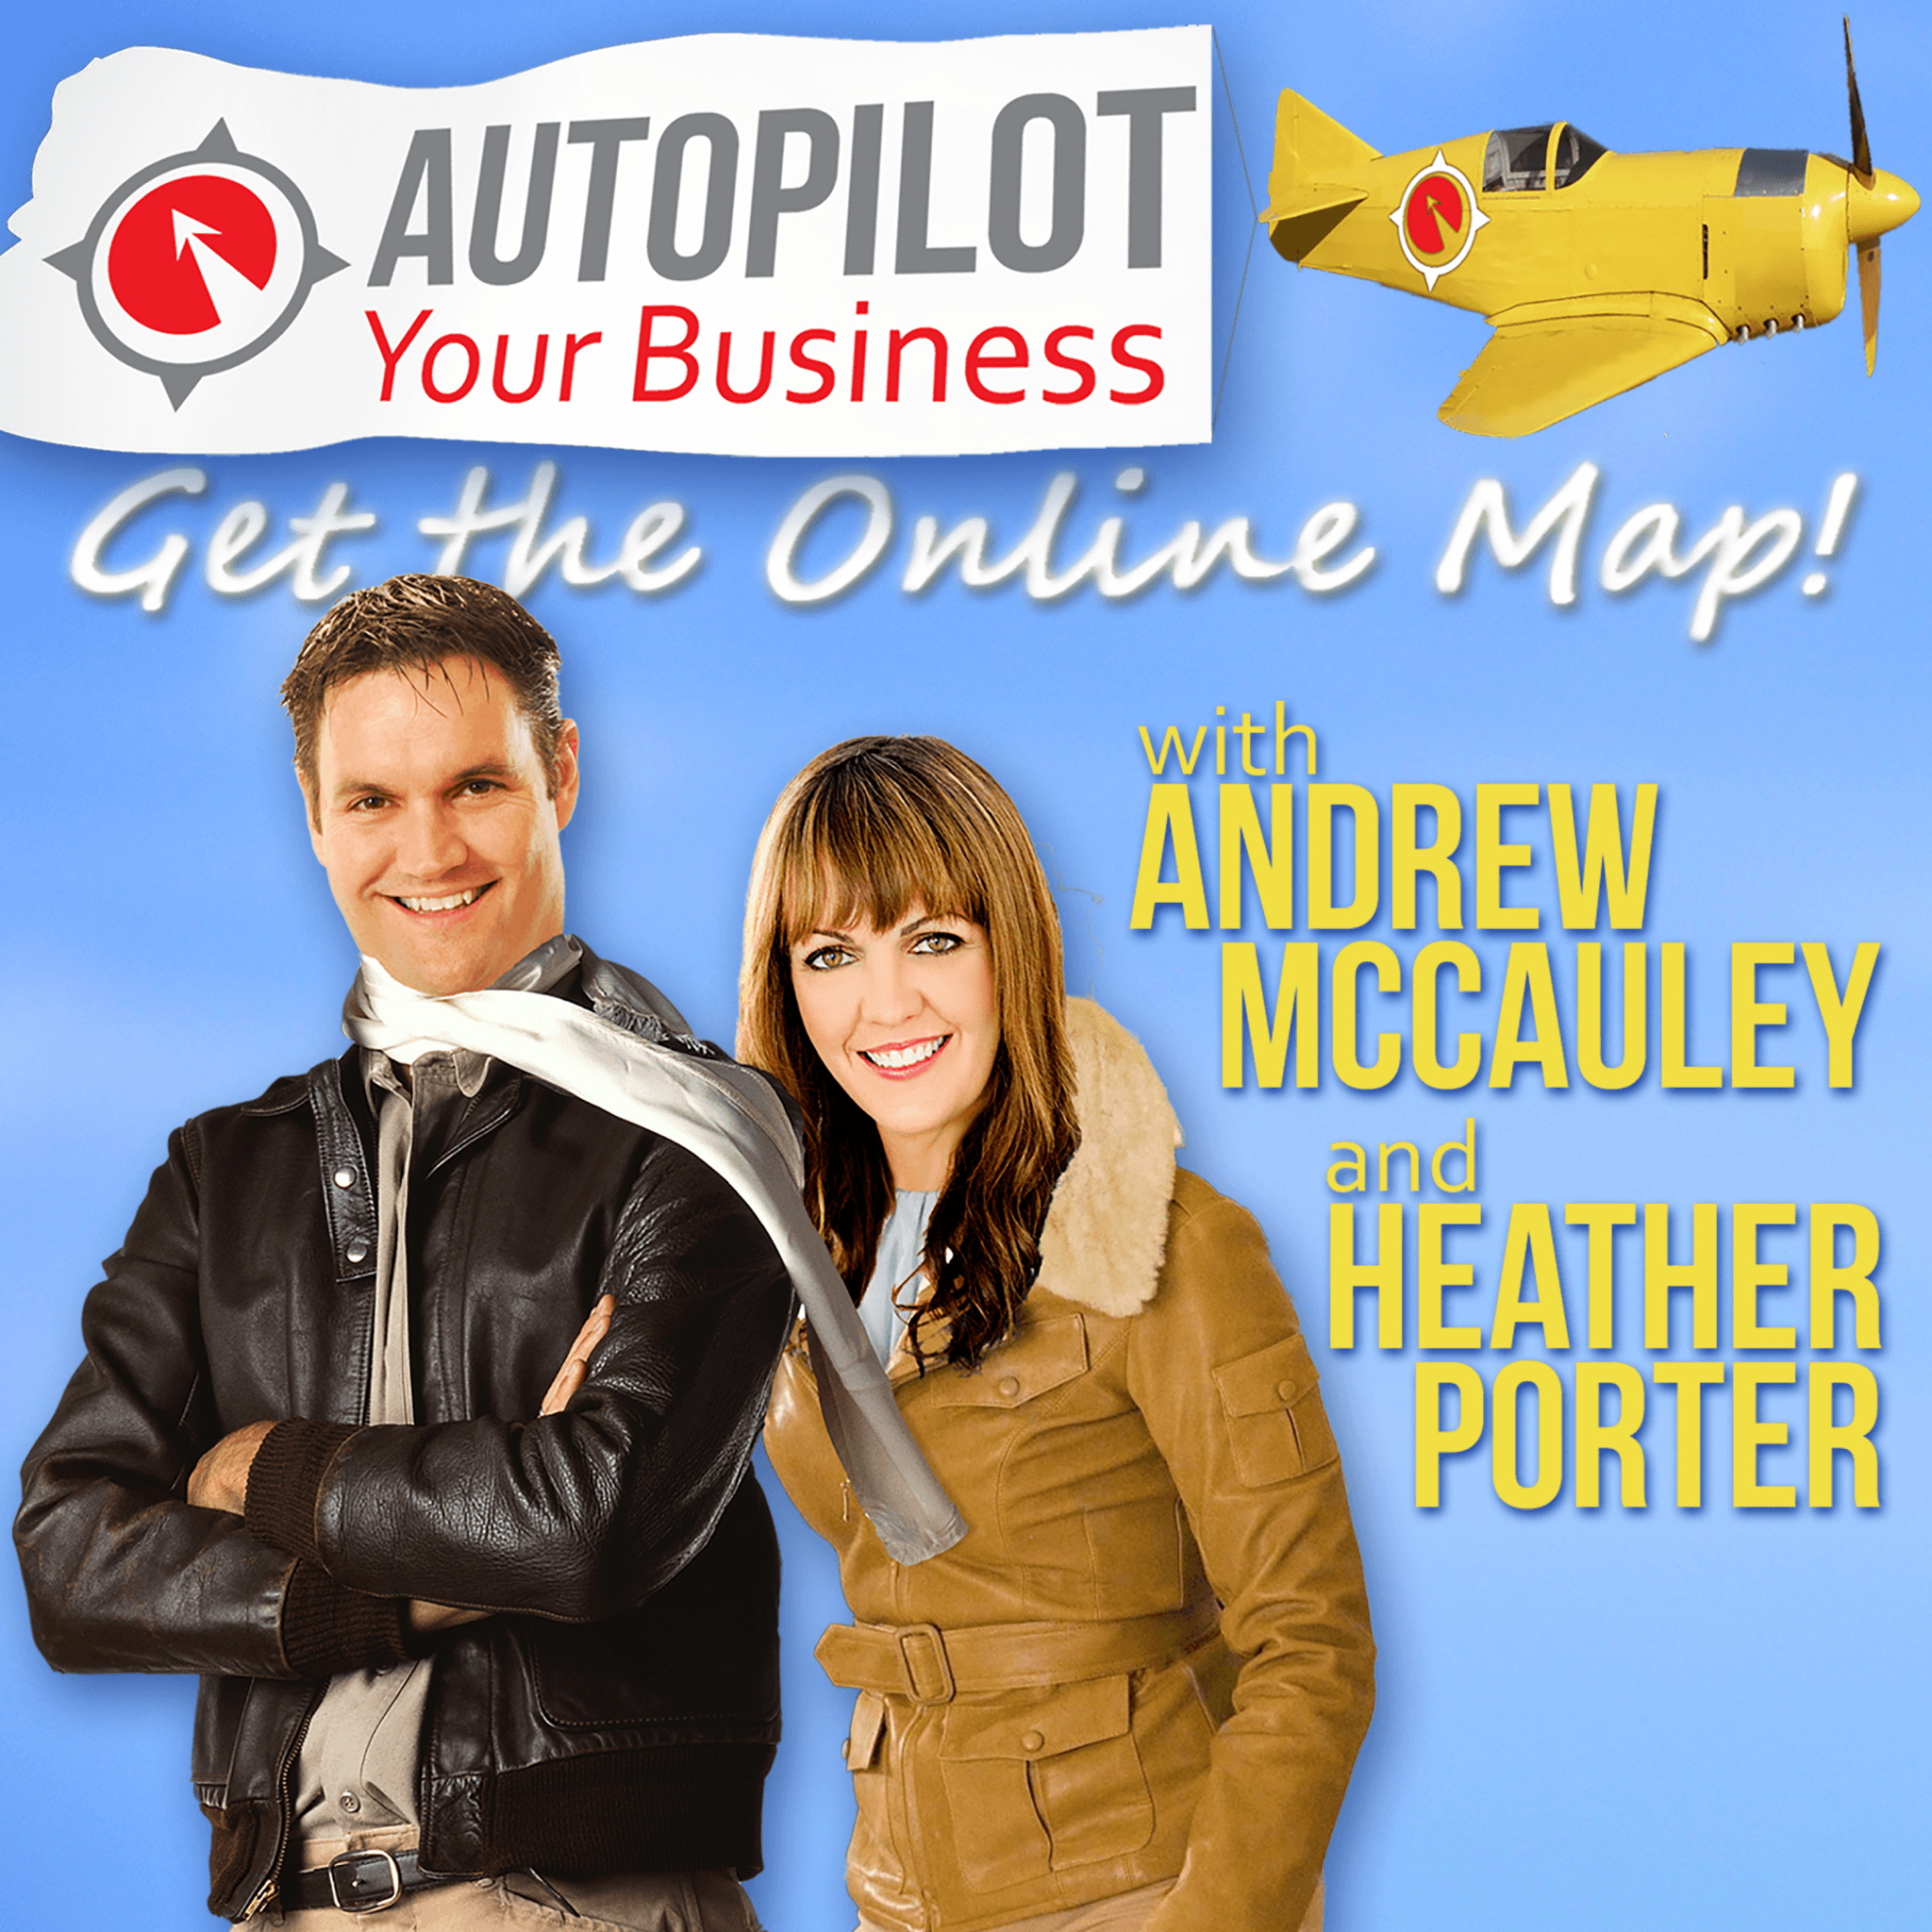 Autopilot Your Business